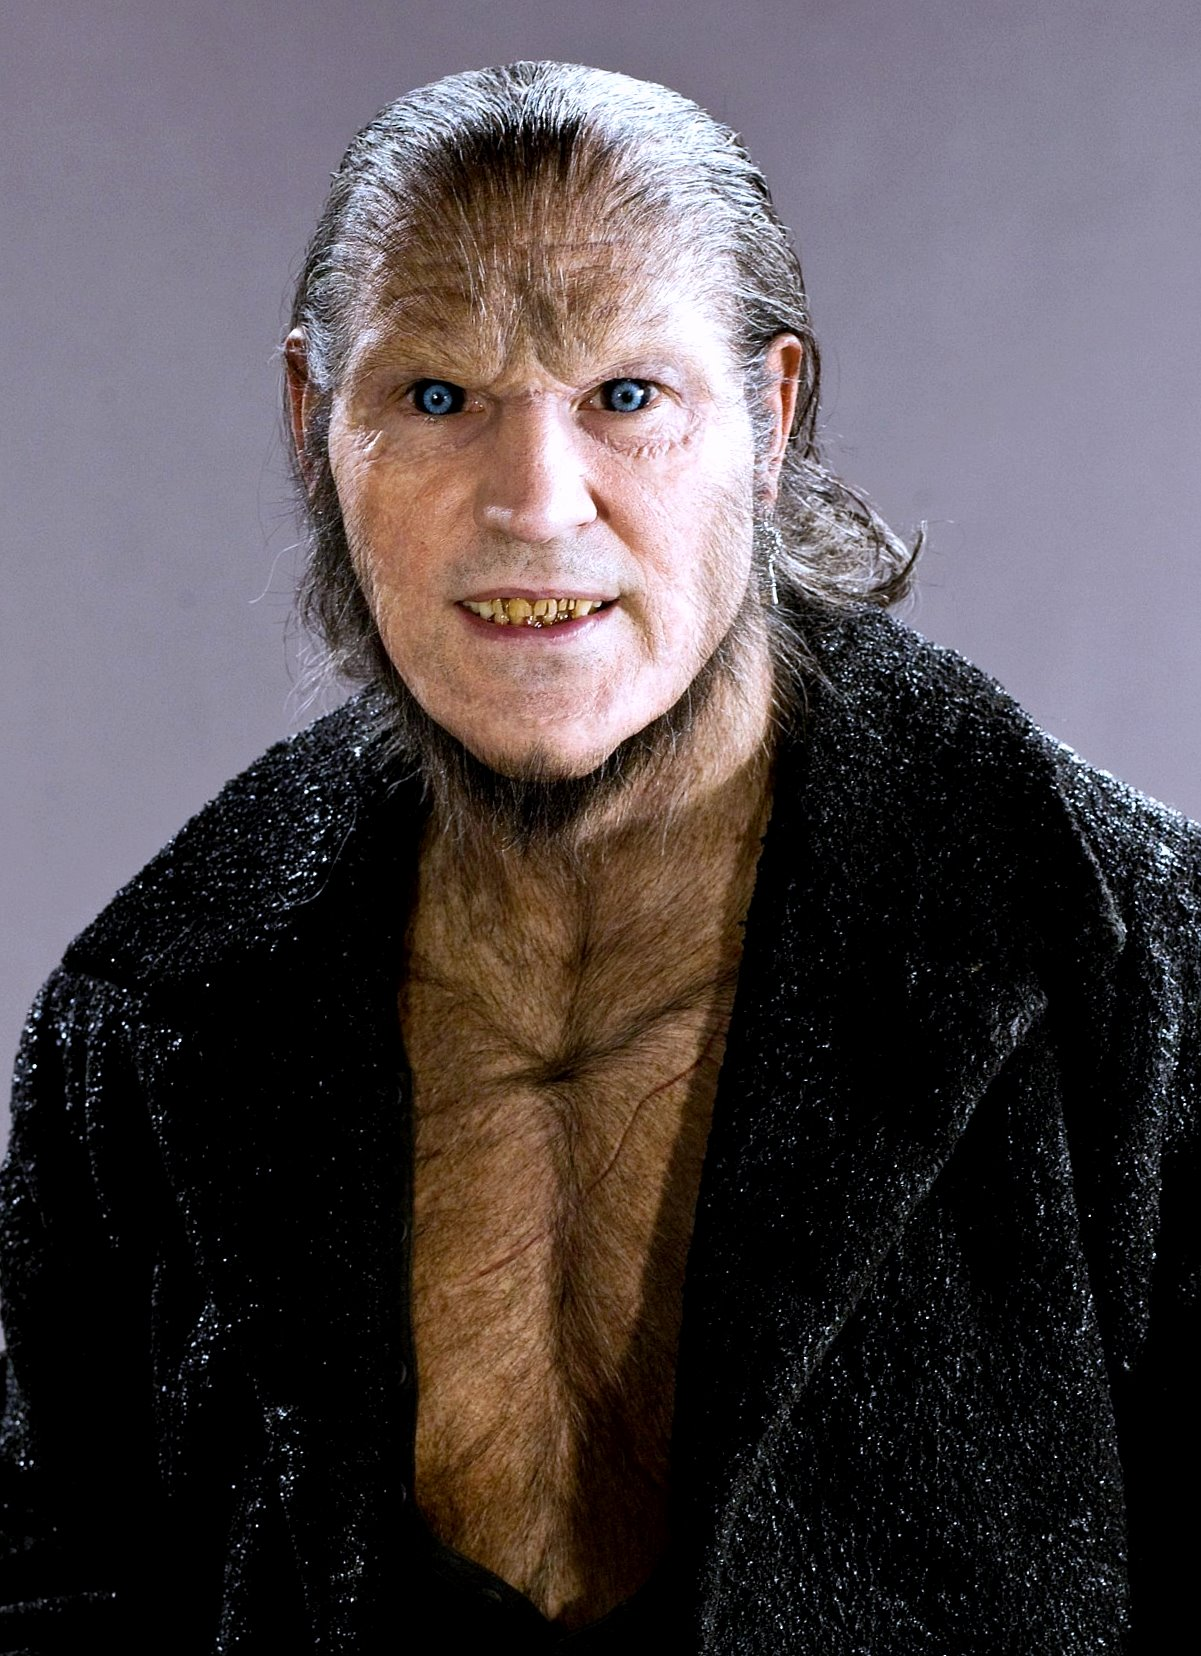 Fenrir Greyback | Villains Wiki | FANDOM powered by Wikia